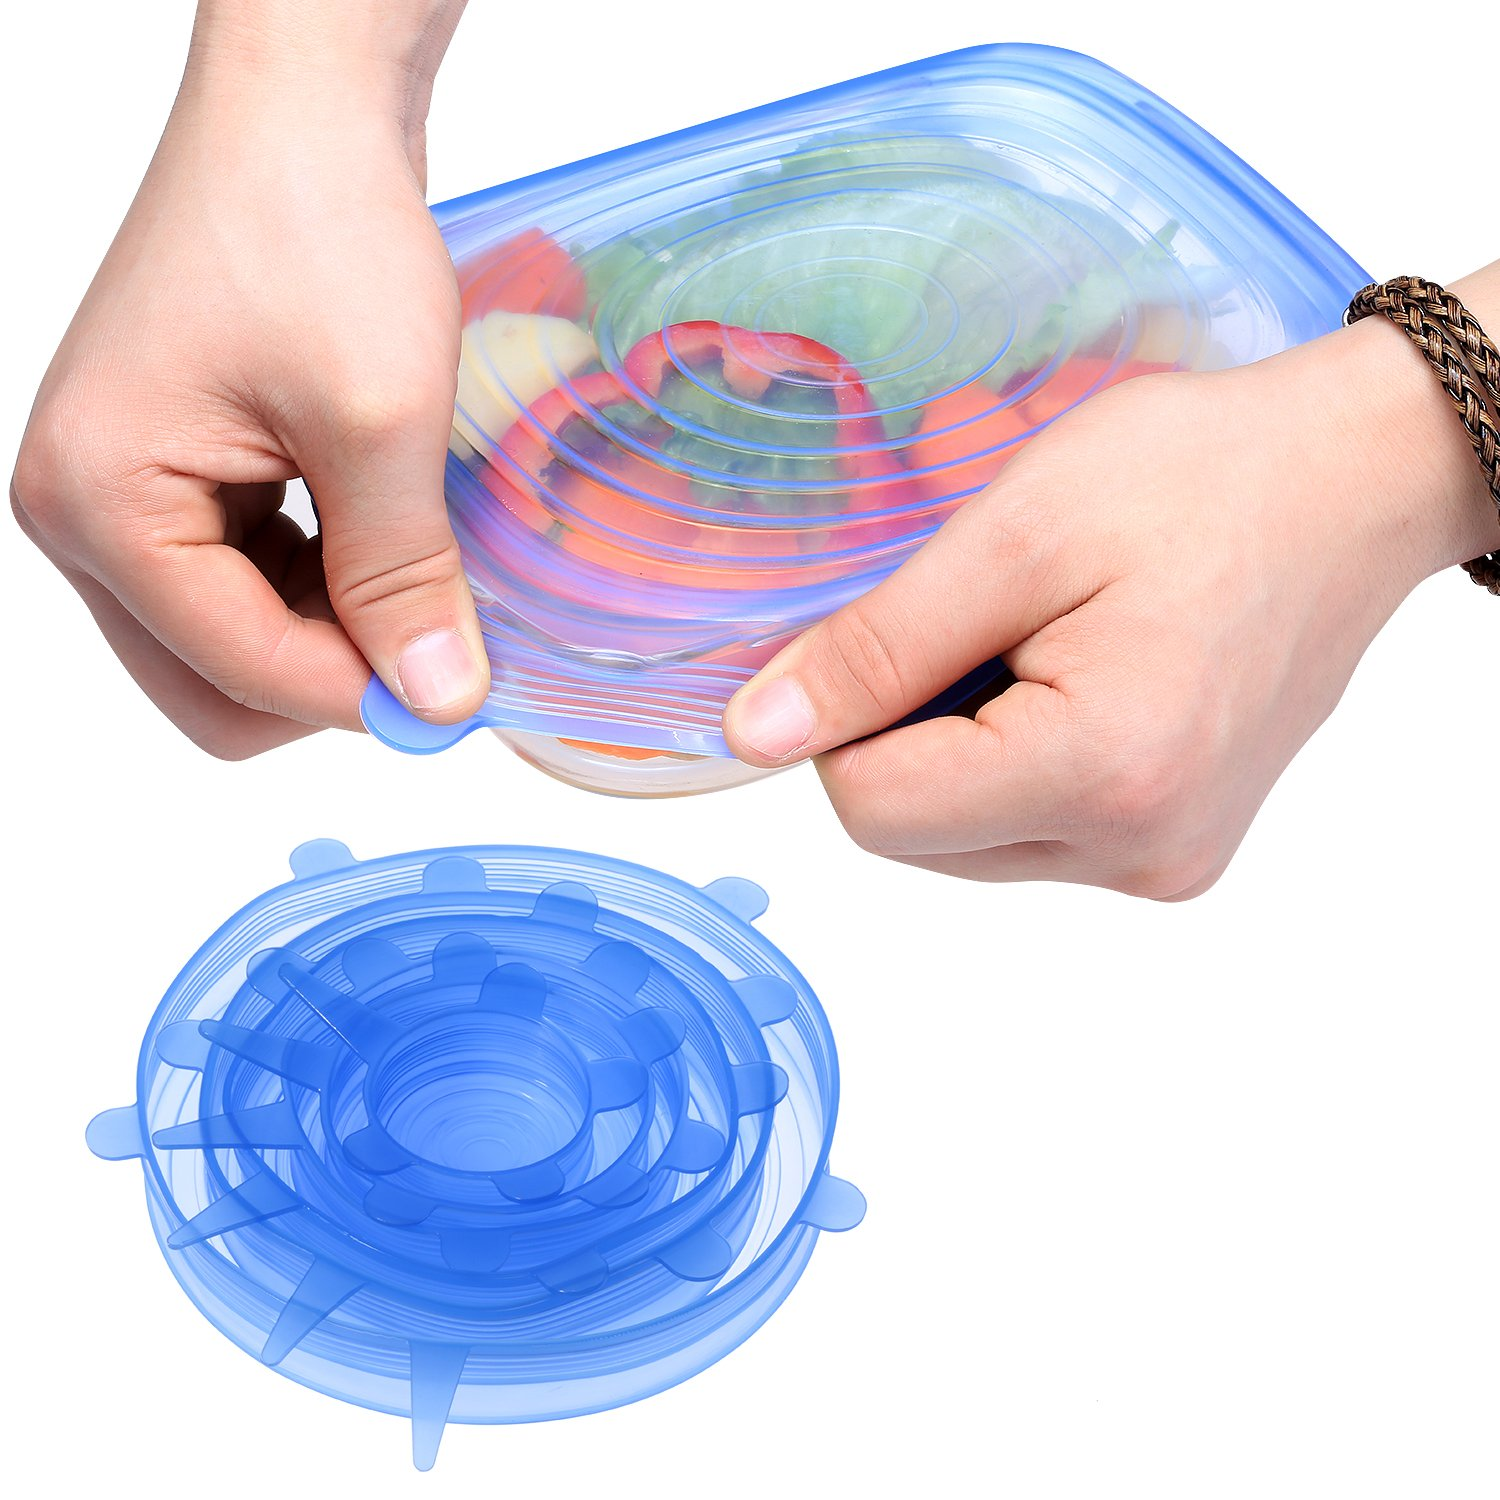 Marx Silicone Stretch Lids,Set of 6 Multi Size Reusable Silicone Lids Food and Bowl Covers,Dishwasher and Freezer Safe (Blue)